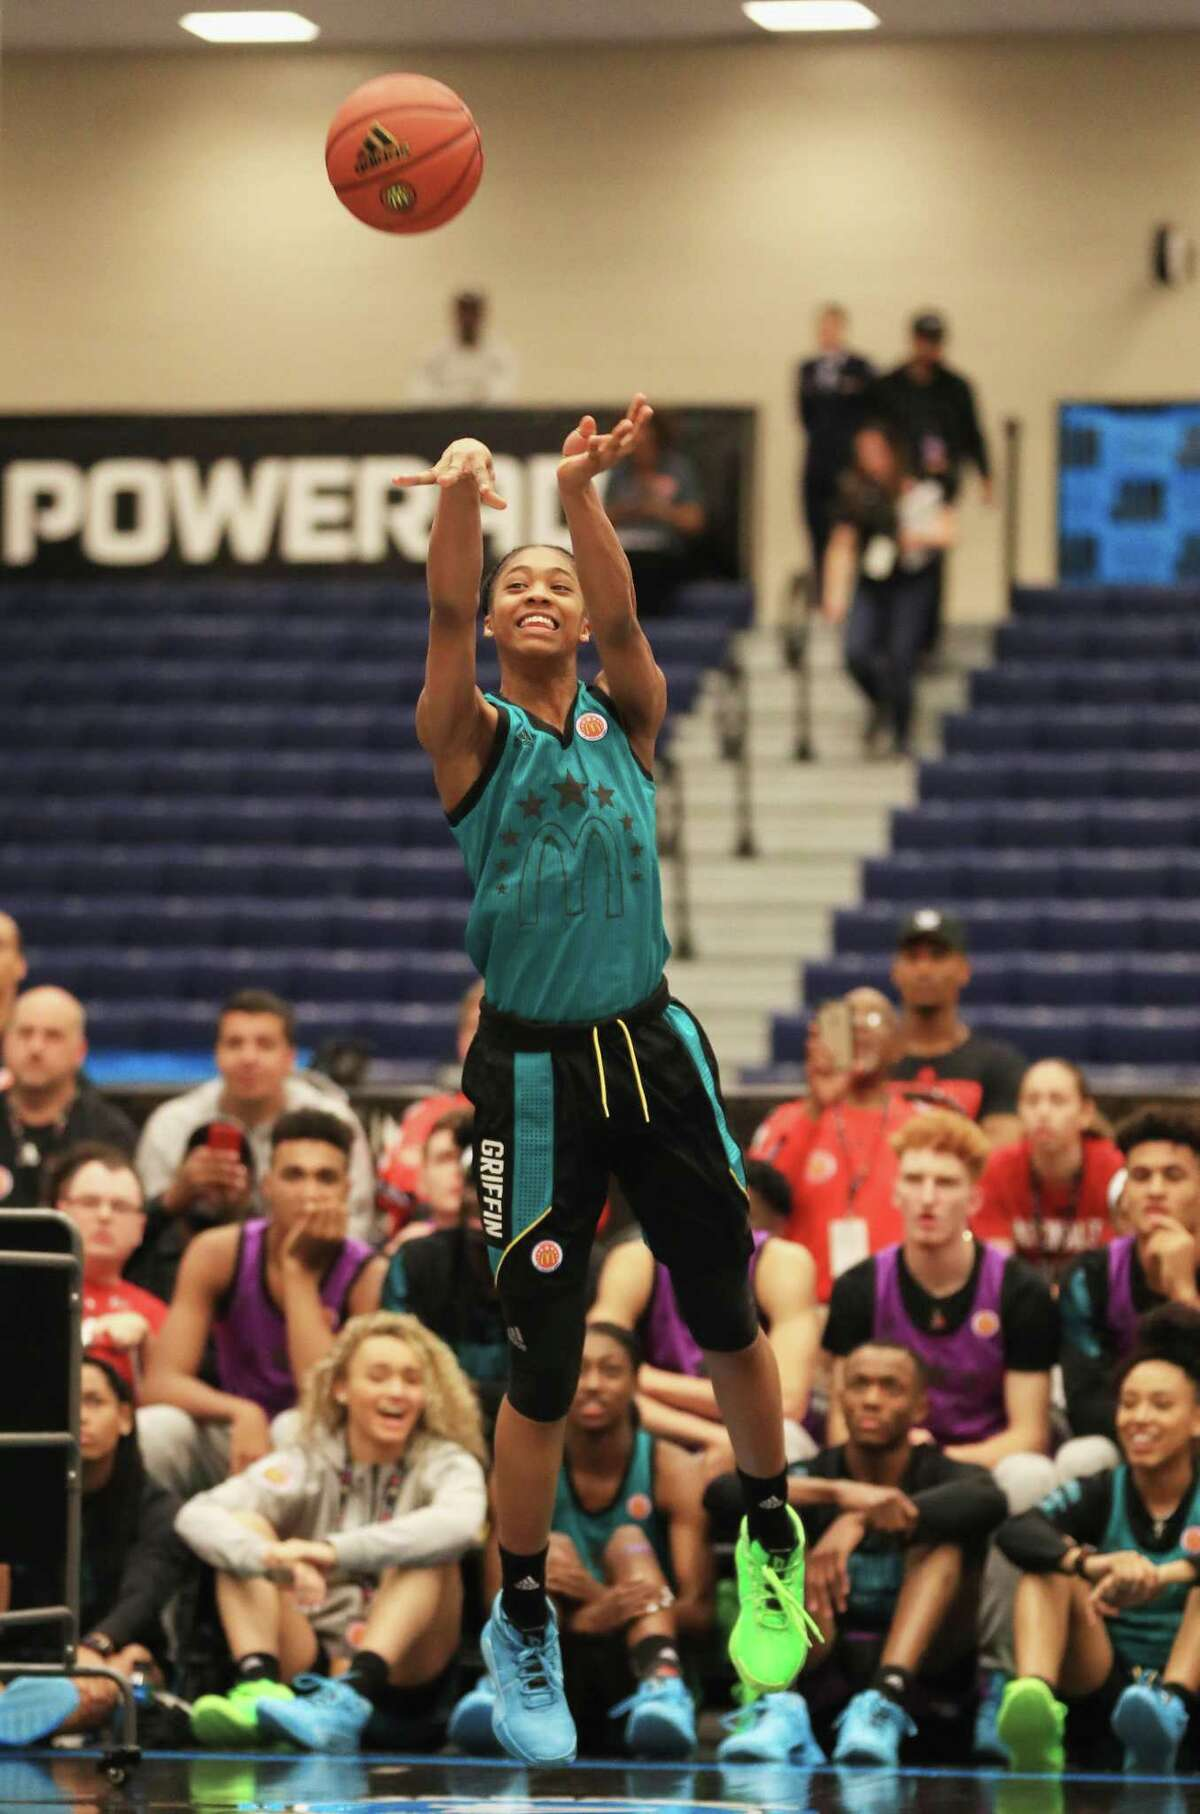 UConn-commit Aubrey Griffin competes in the Legends & Stars Shootout during the 2019 Powerade Jam Fest on March 25 in Marietta, Georgia.